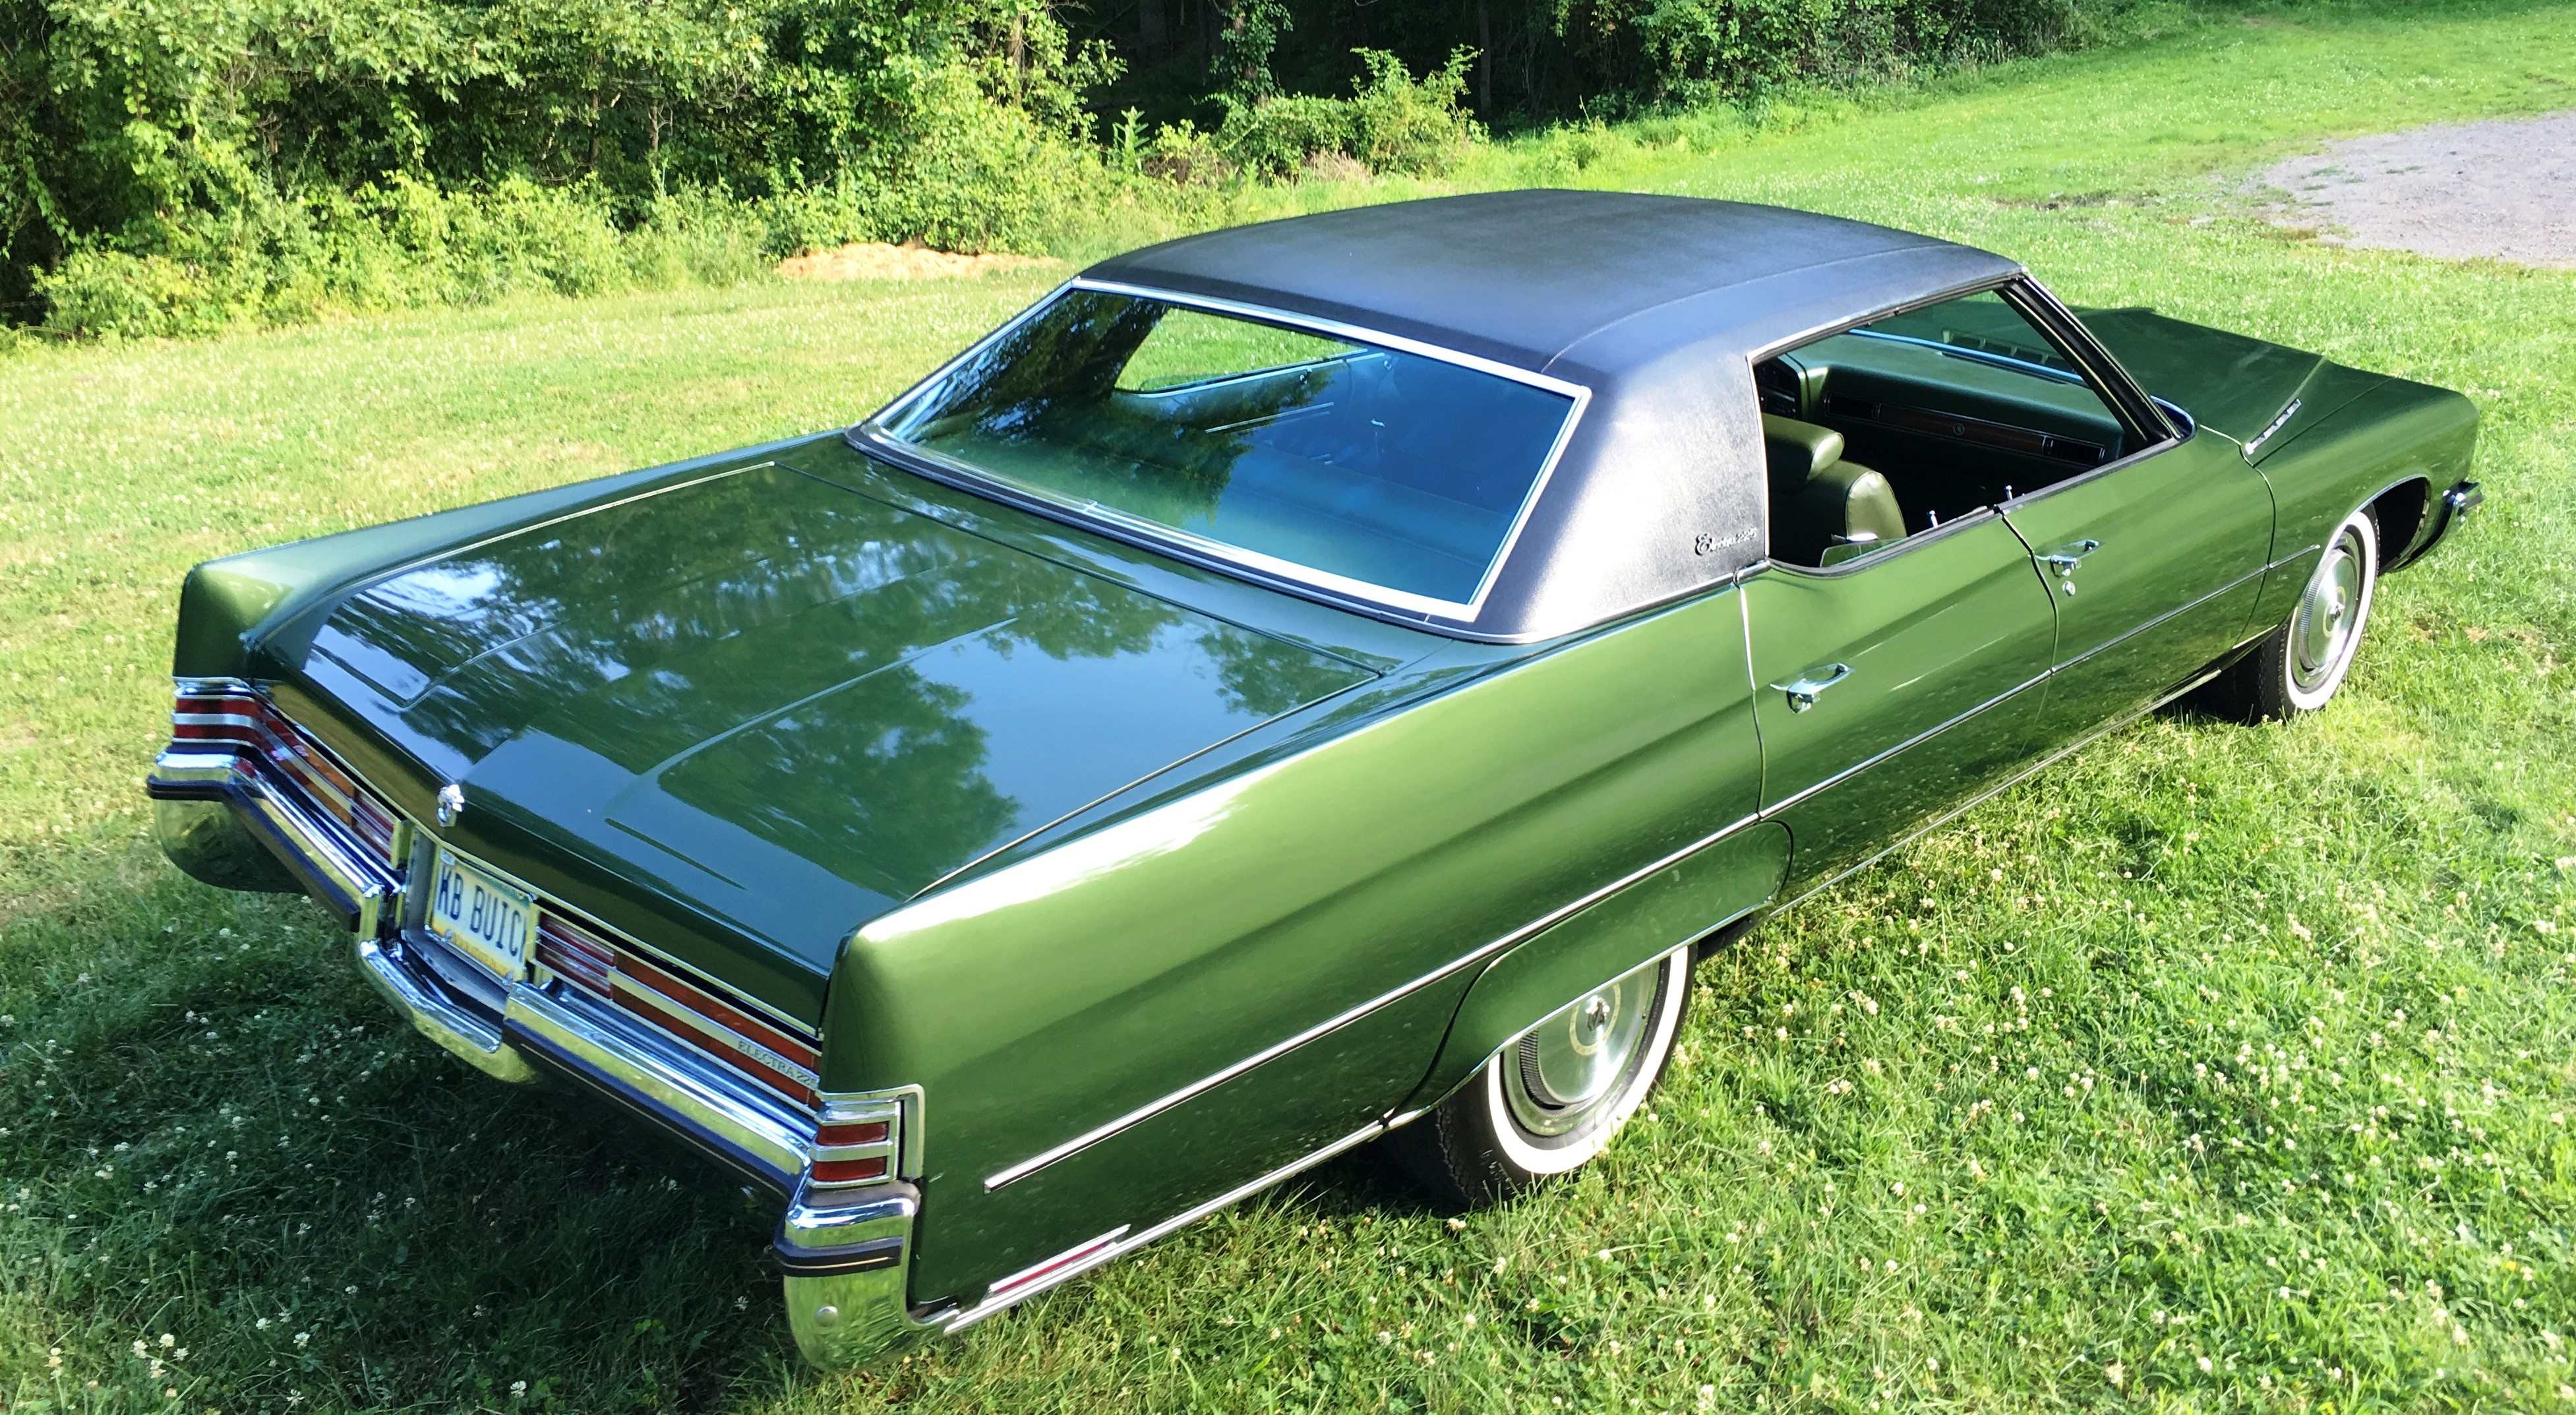 1972 Buick Electra 225 11K original Miles - SOLD - Cars For Sale ...